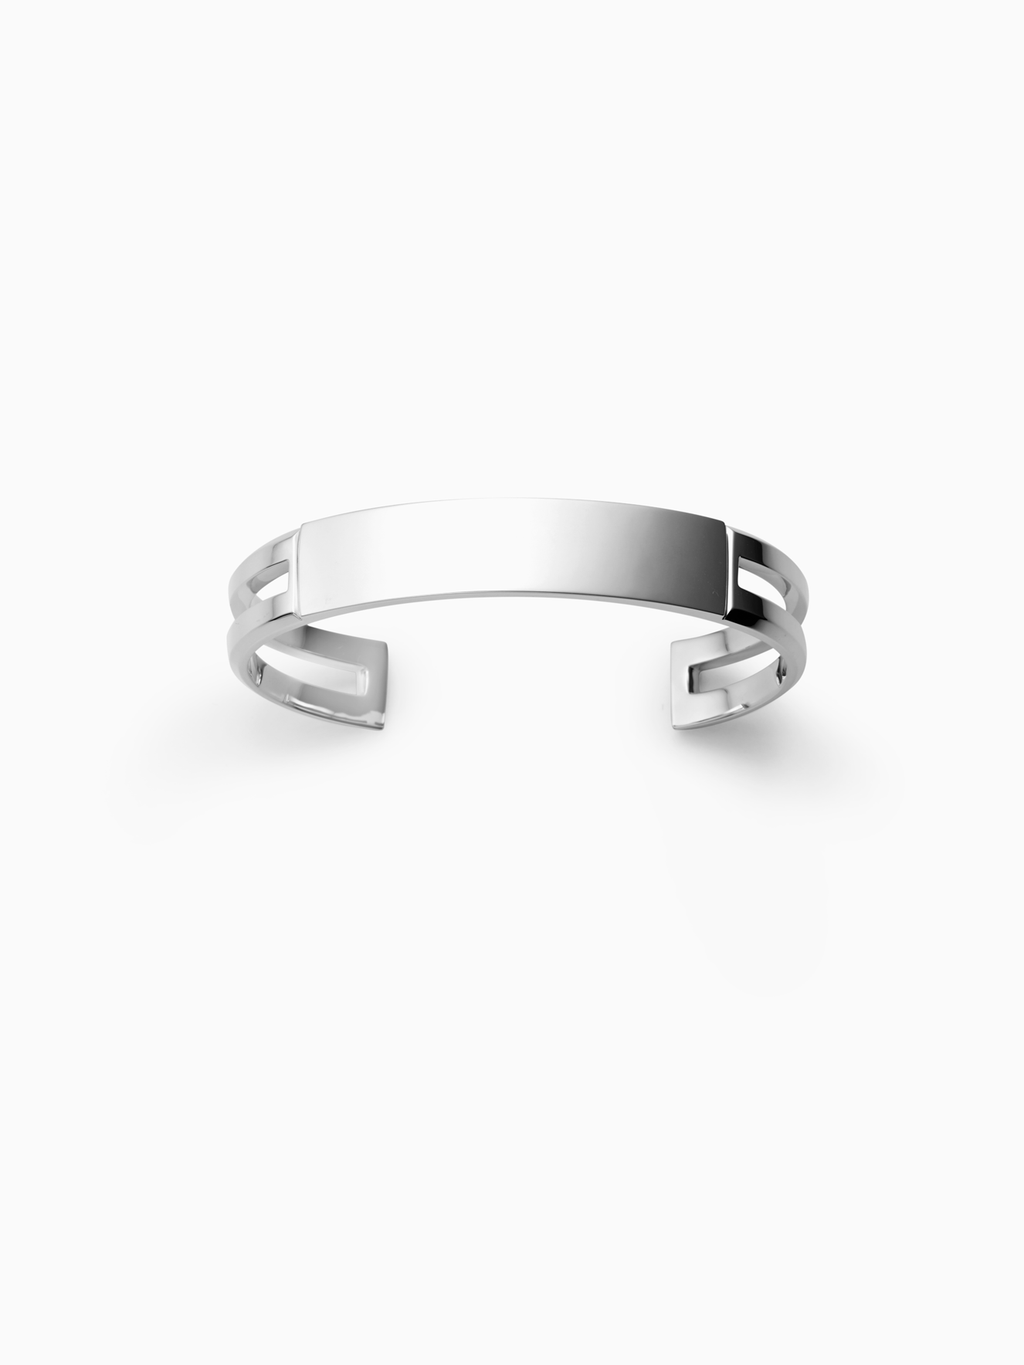 Mercury-G / Bangle / Silver